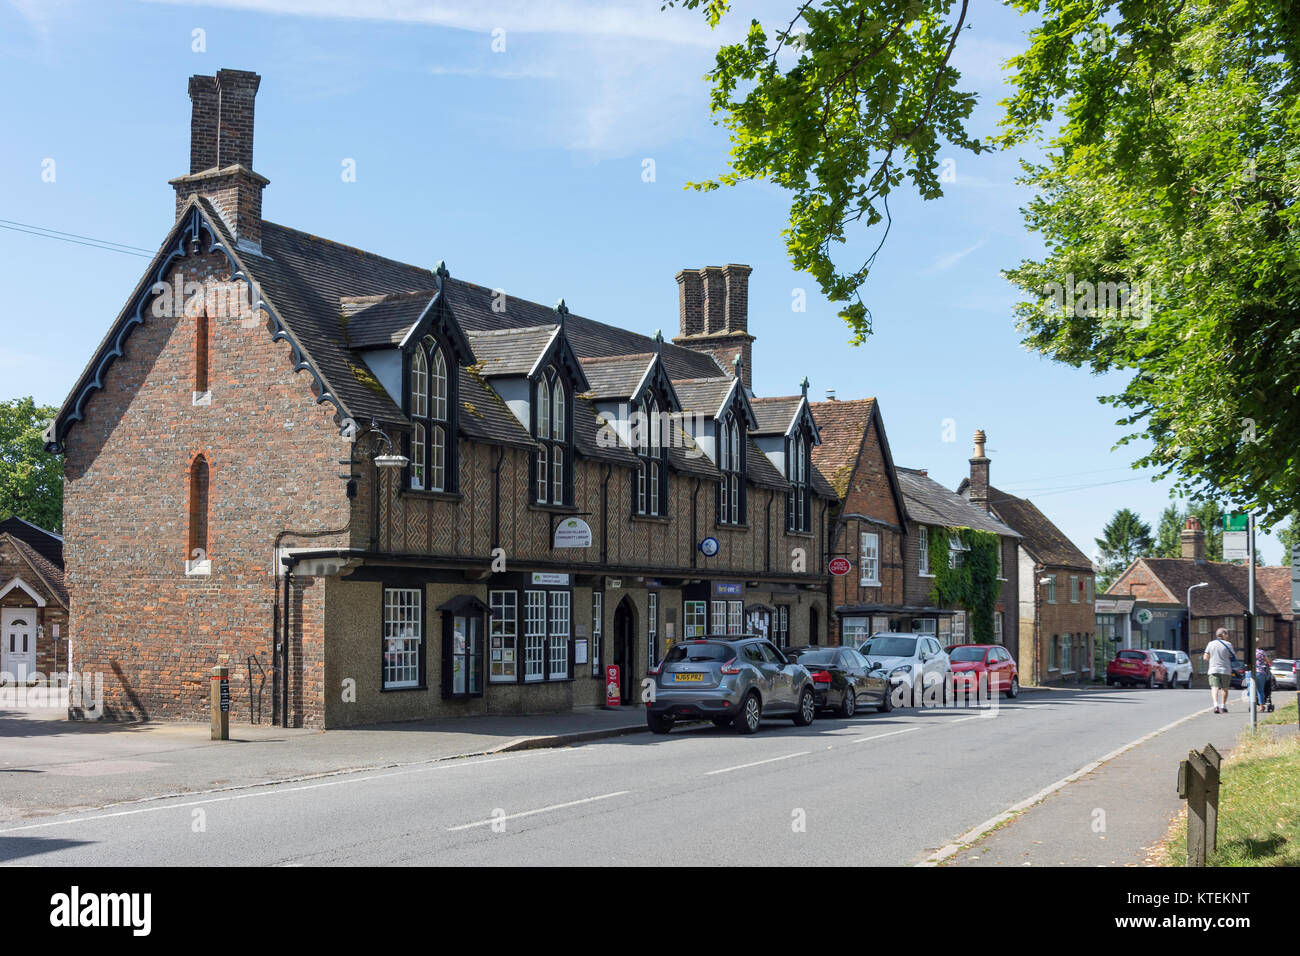 Beacon Villages Community Library and Post Office , High Street, Ivinghoe, Buckinghamshire, England, United Kingdom - Stock Image